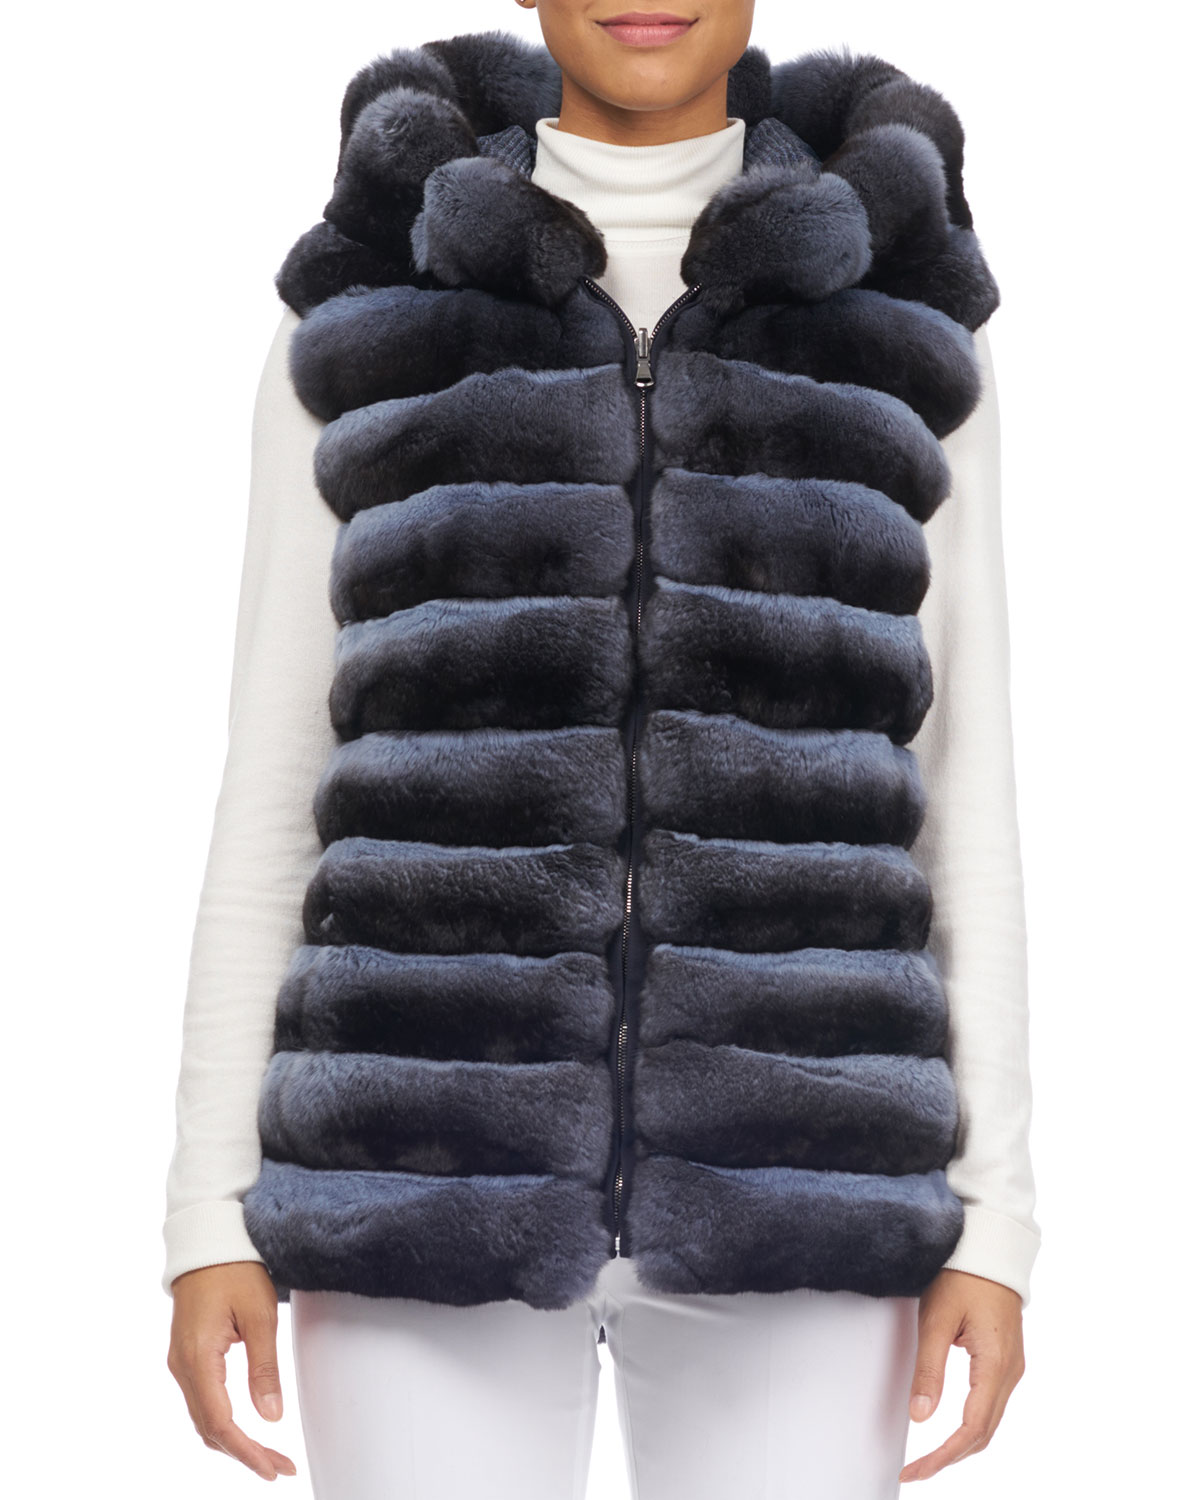 NORMAN AMBROSE Zip-Front Hooded Reversible Chinchilla Fur Quilted Vest in Light Blue